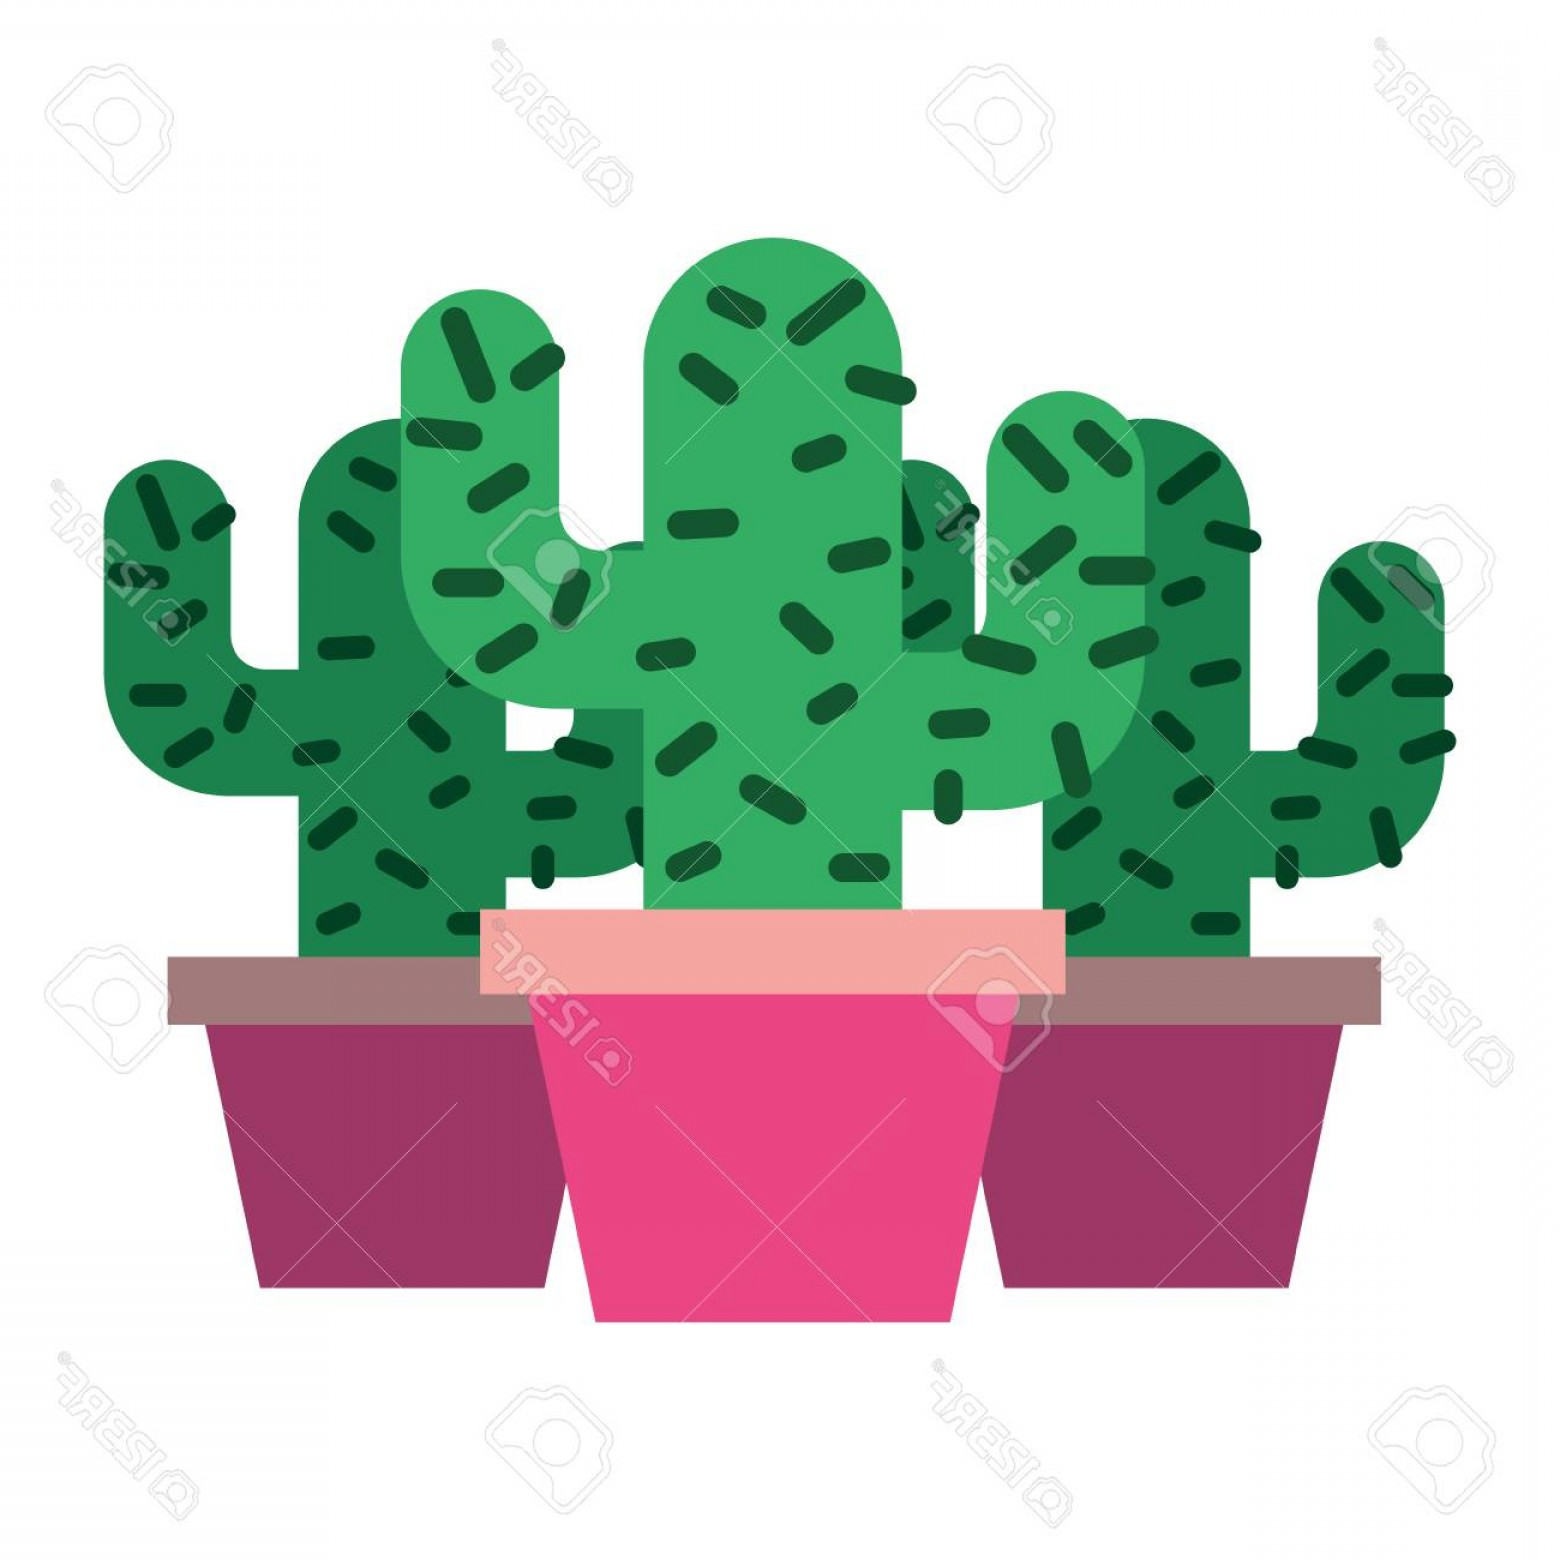 Potted Cactus Plant Vector: Photostock Vector Three Potted Cactus Plant Natural Vector Illustration